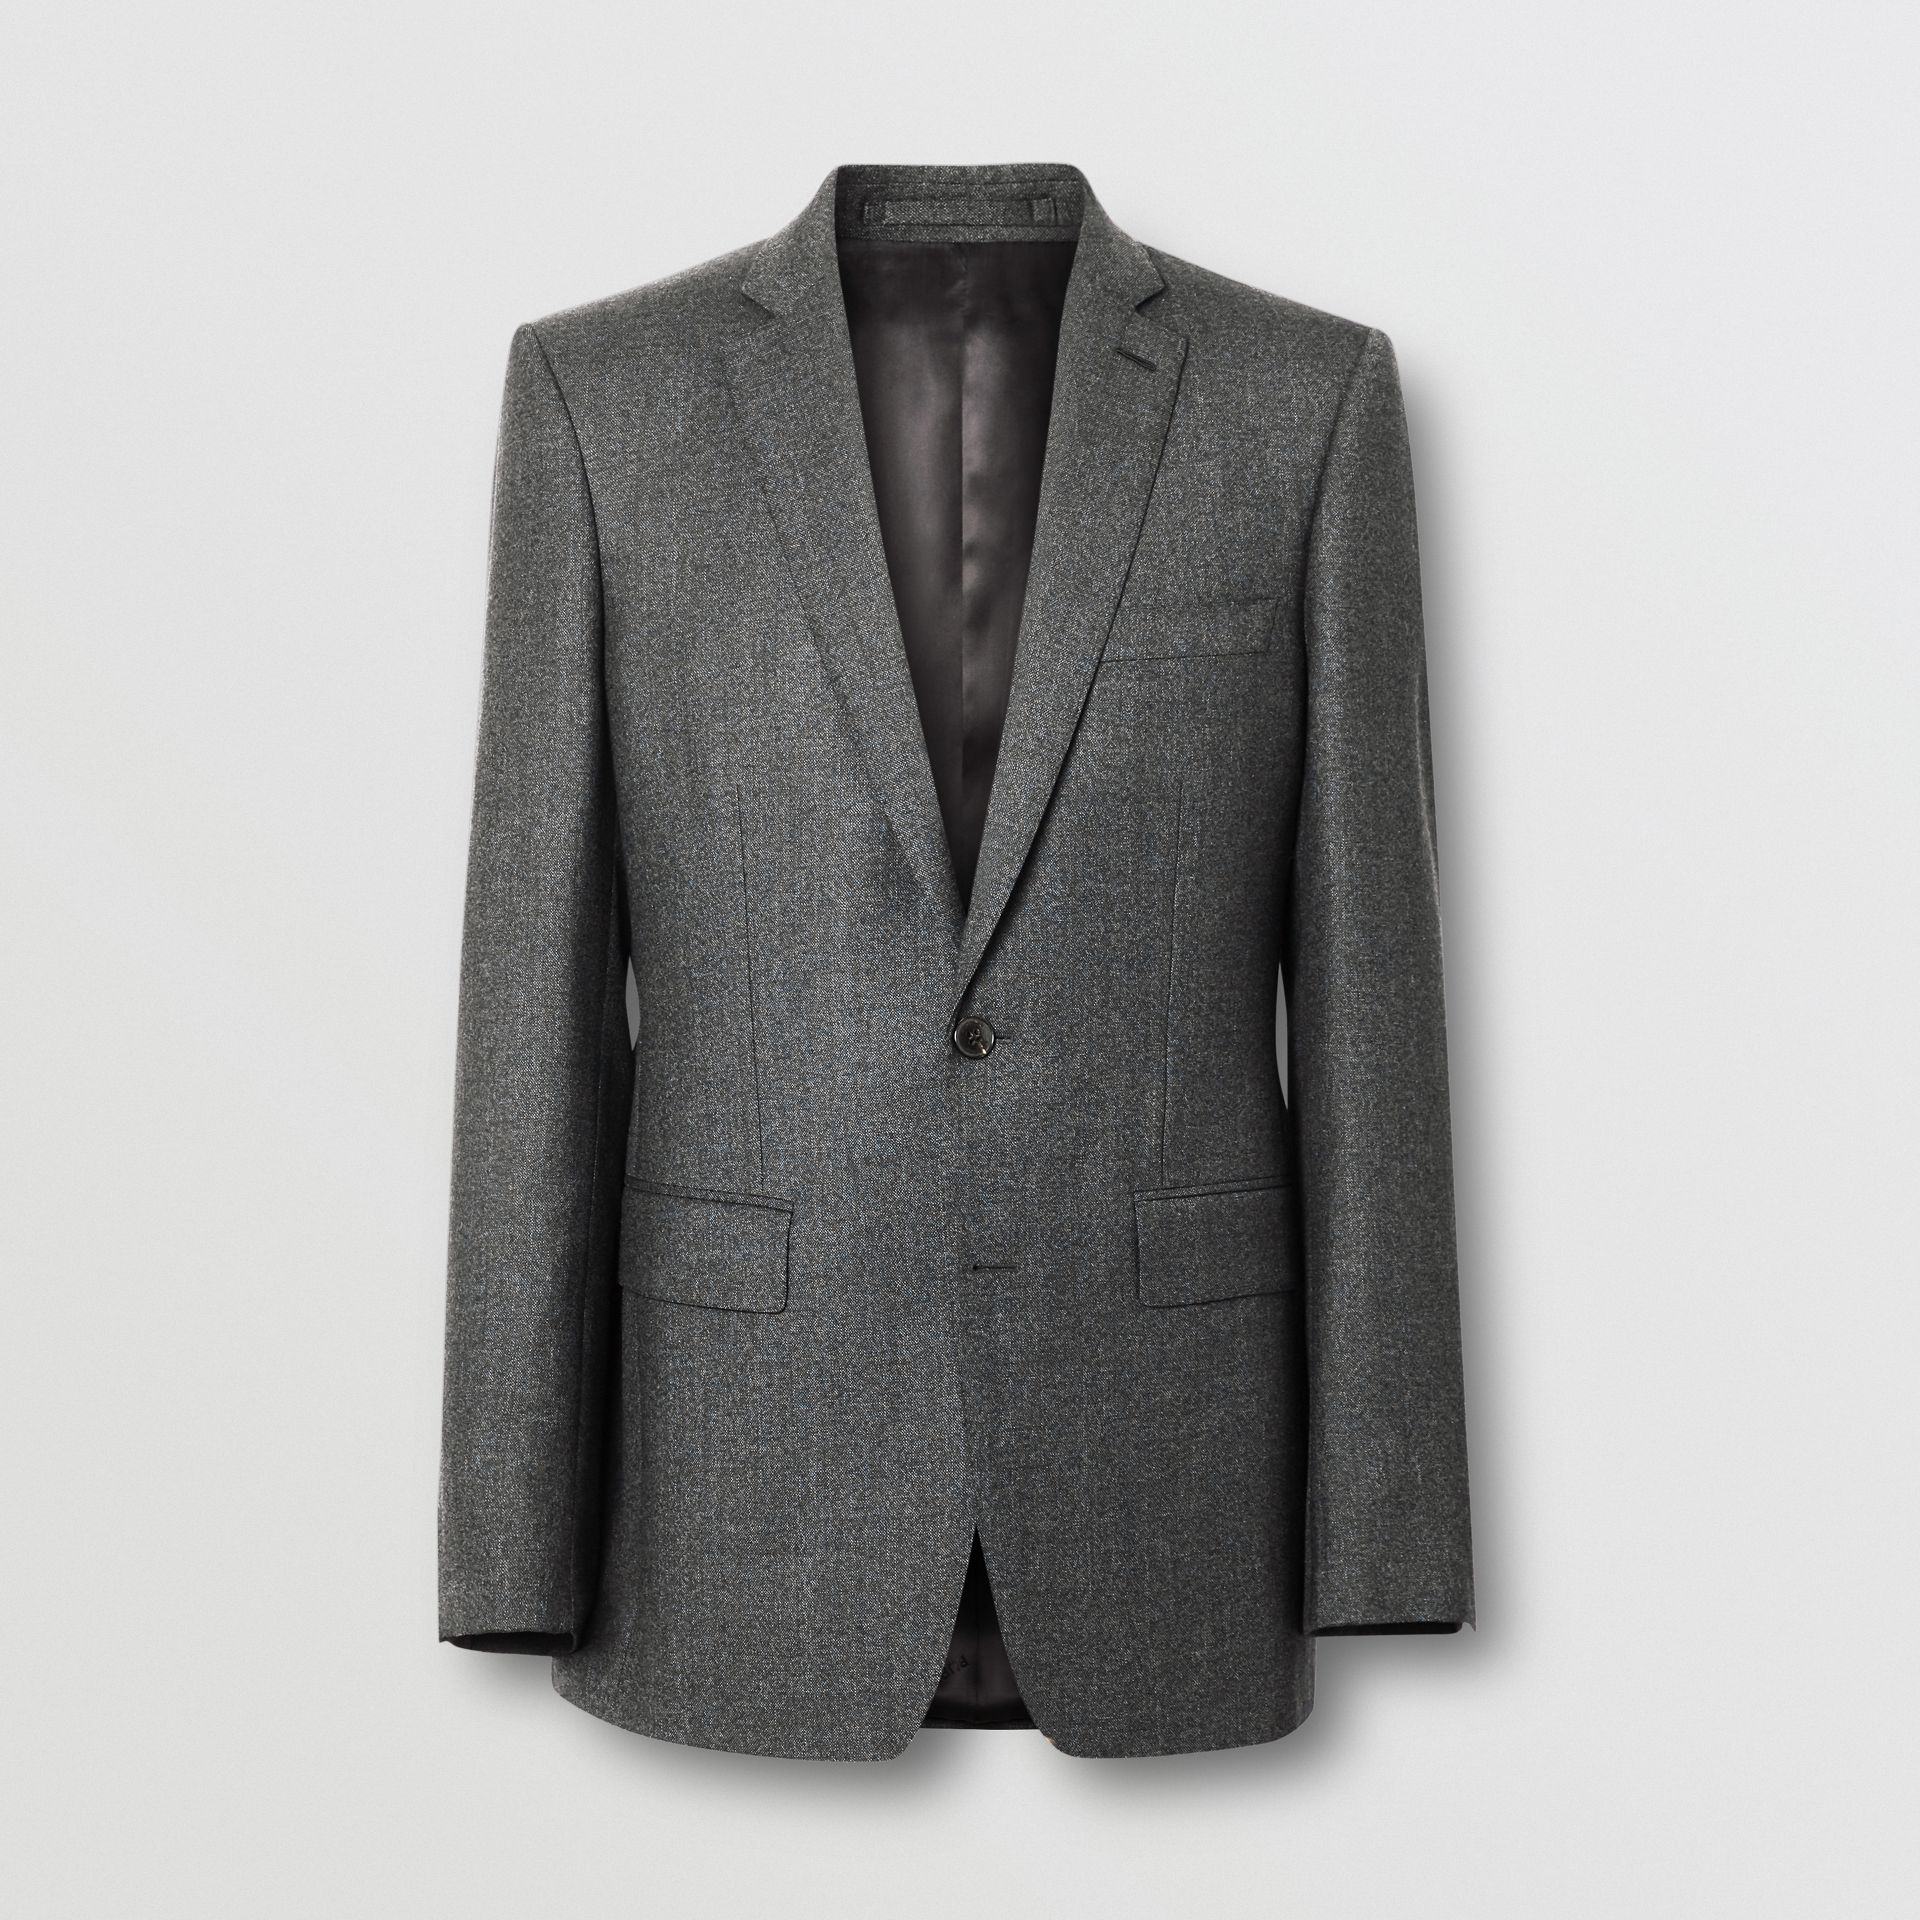 English Fit Sharkskin Wool Suit in Black Melange - Men | Burberry - gallery image 3